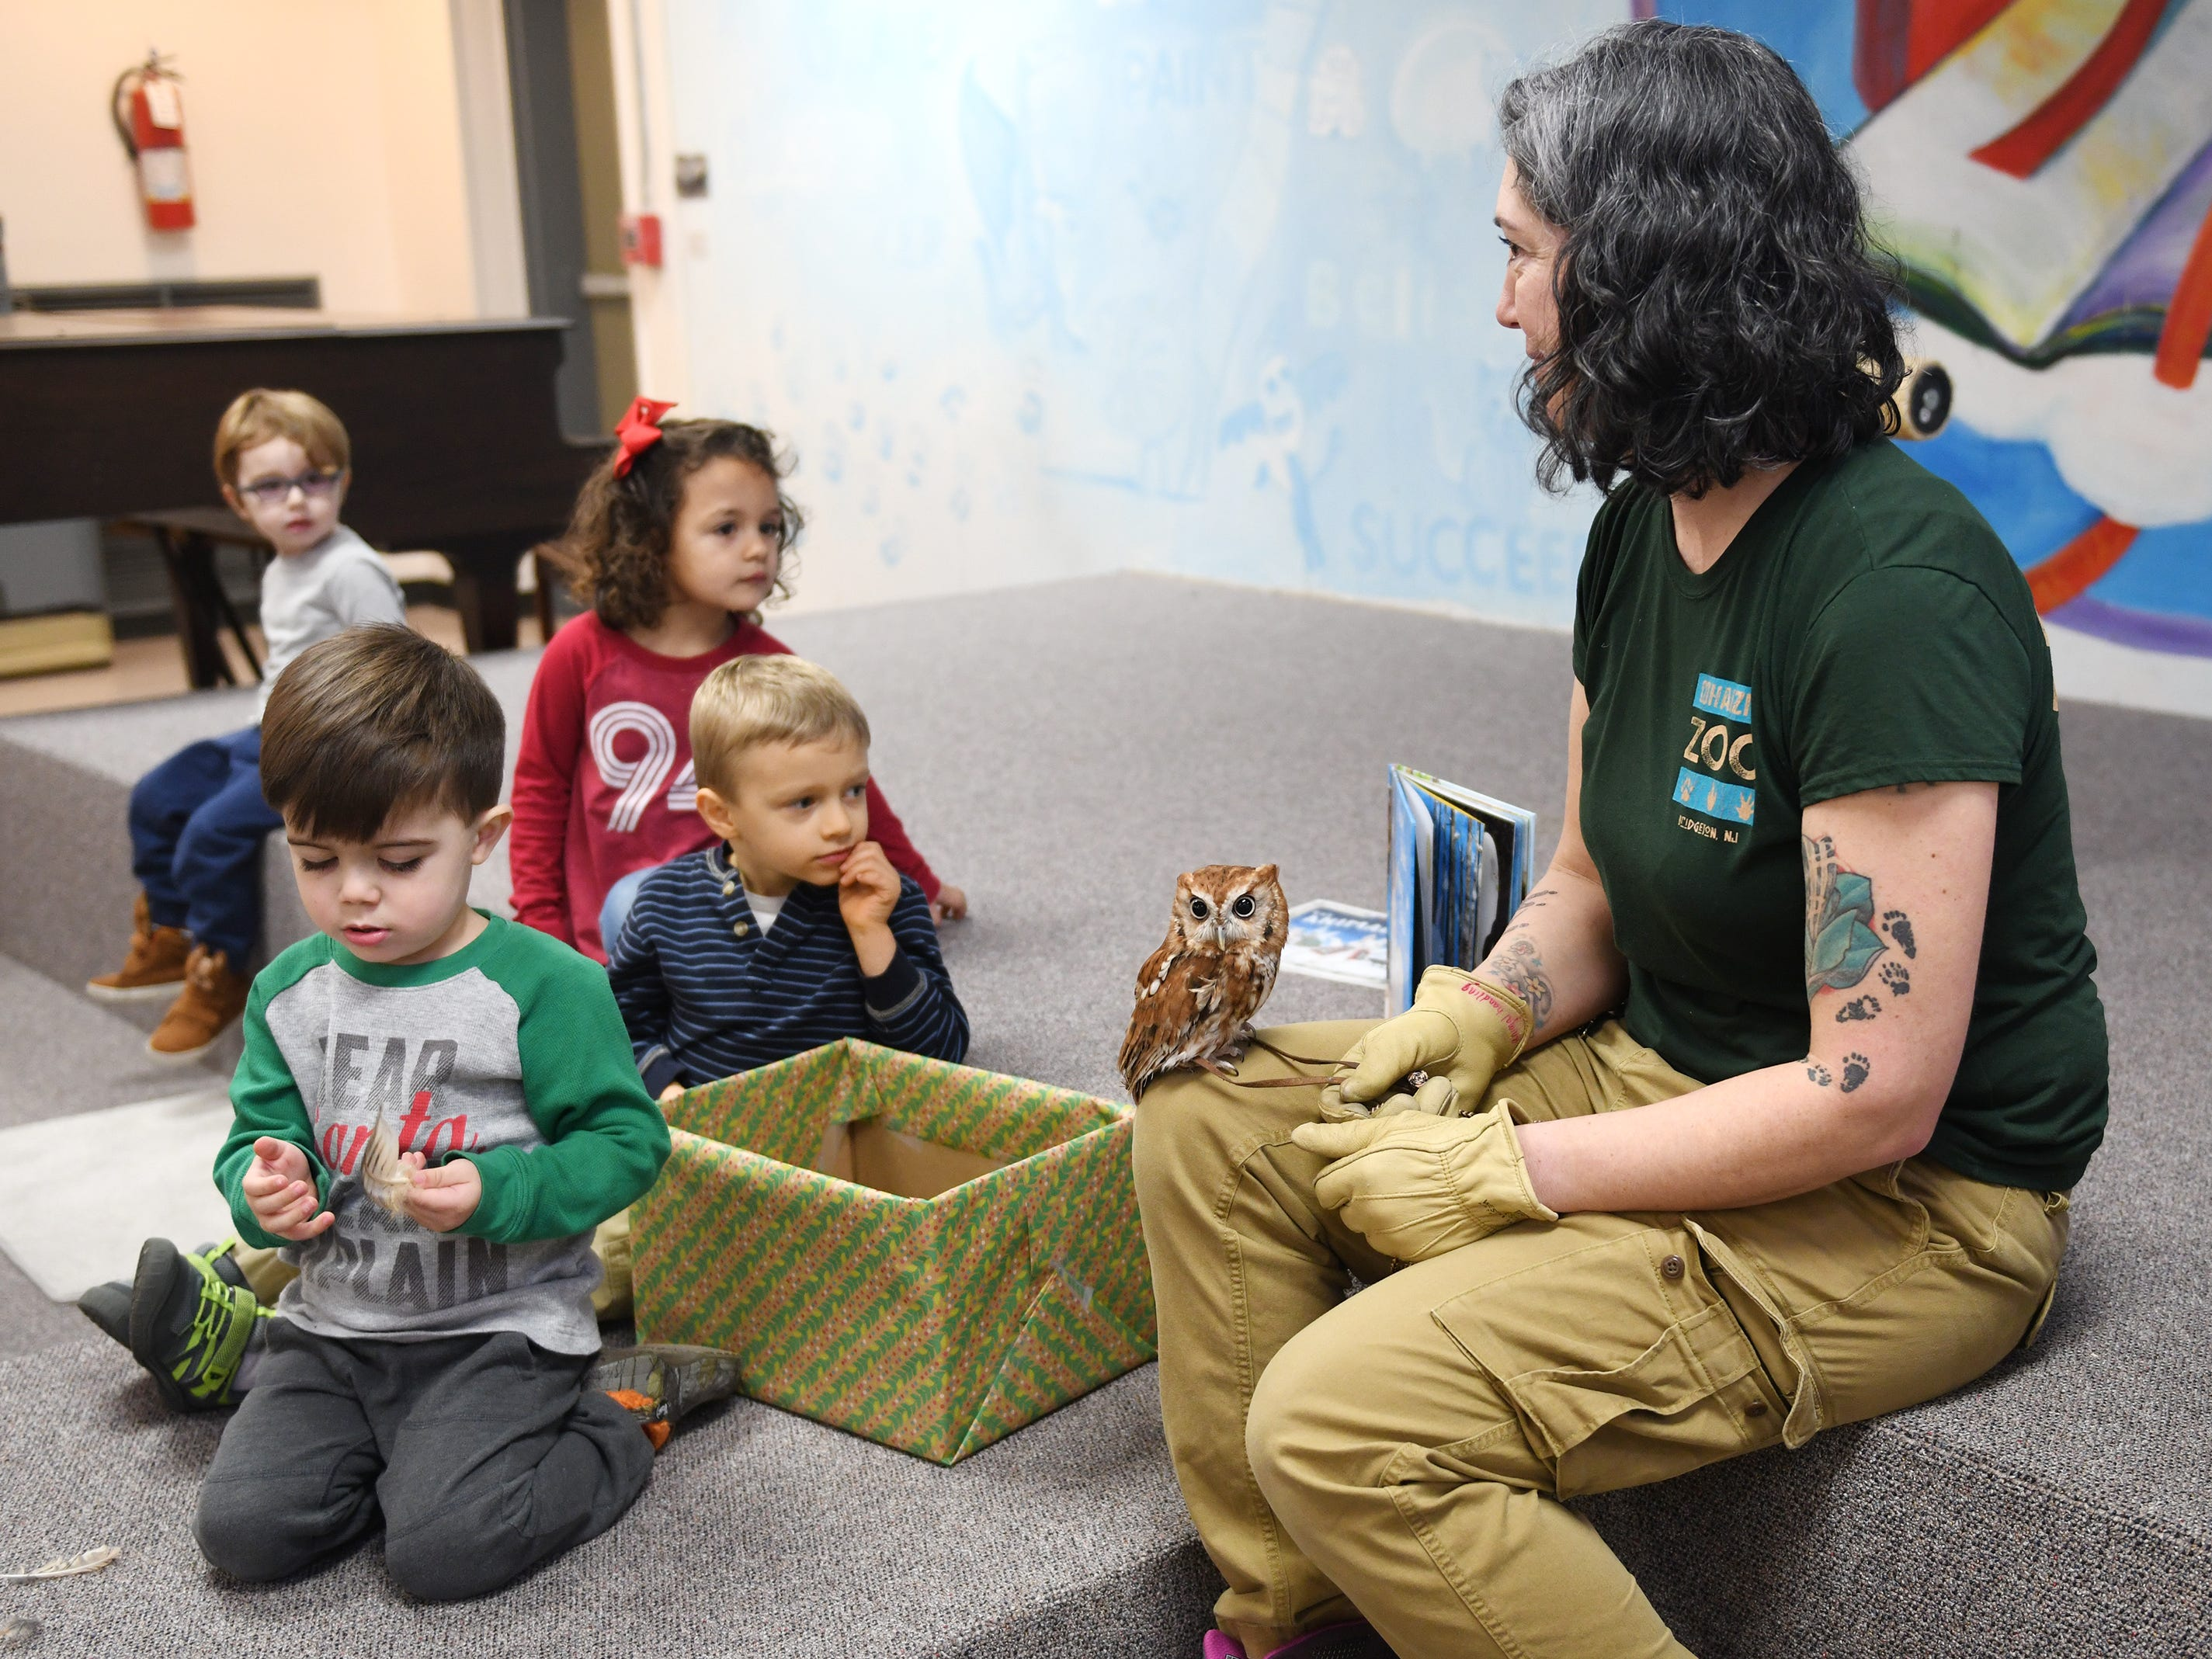 Cohanzick Zoo zookeeper Alison Bohn shows off a screech owl named Wisp William during Zoobrary time at the Bridgeton Public Library on Thursday, December 20, 2018.